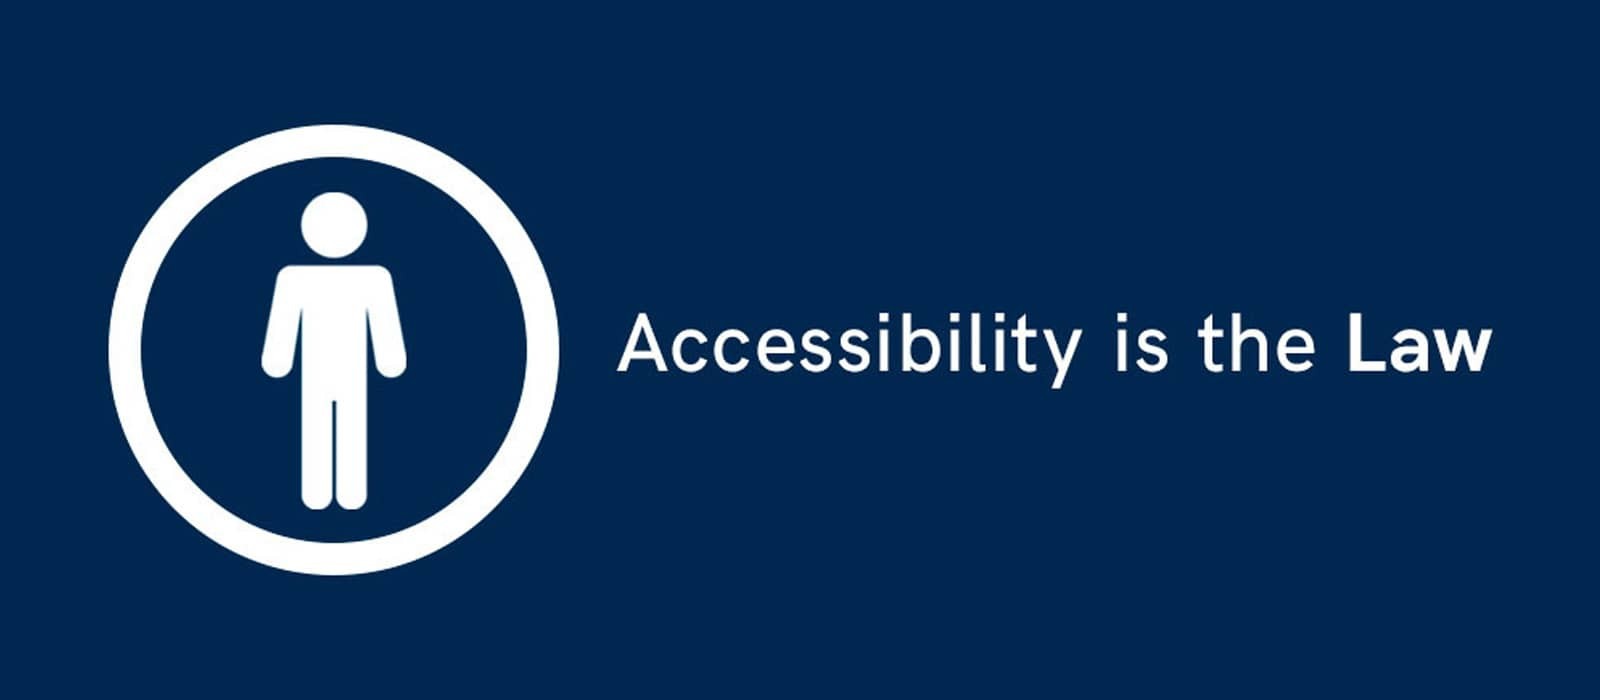 A white logo of a human in a circle next to the statement - Accessibility is the Law